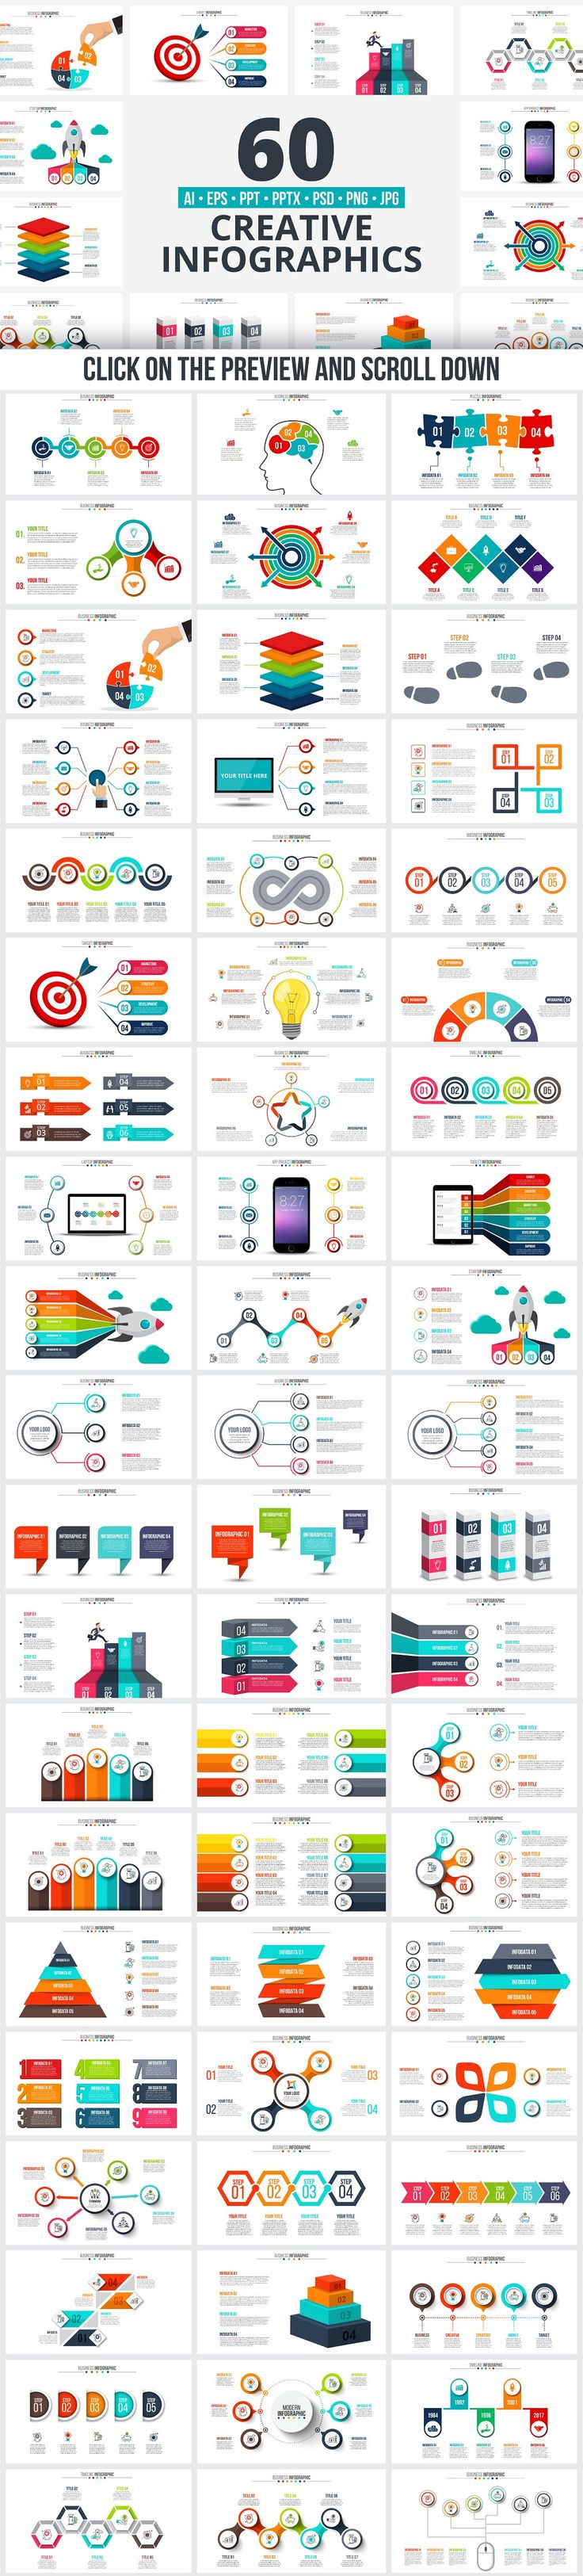 PPT infographic elements bundle by Abert